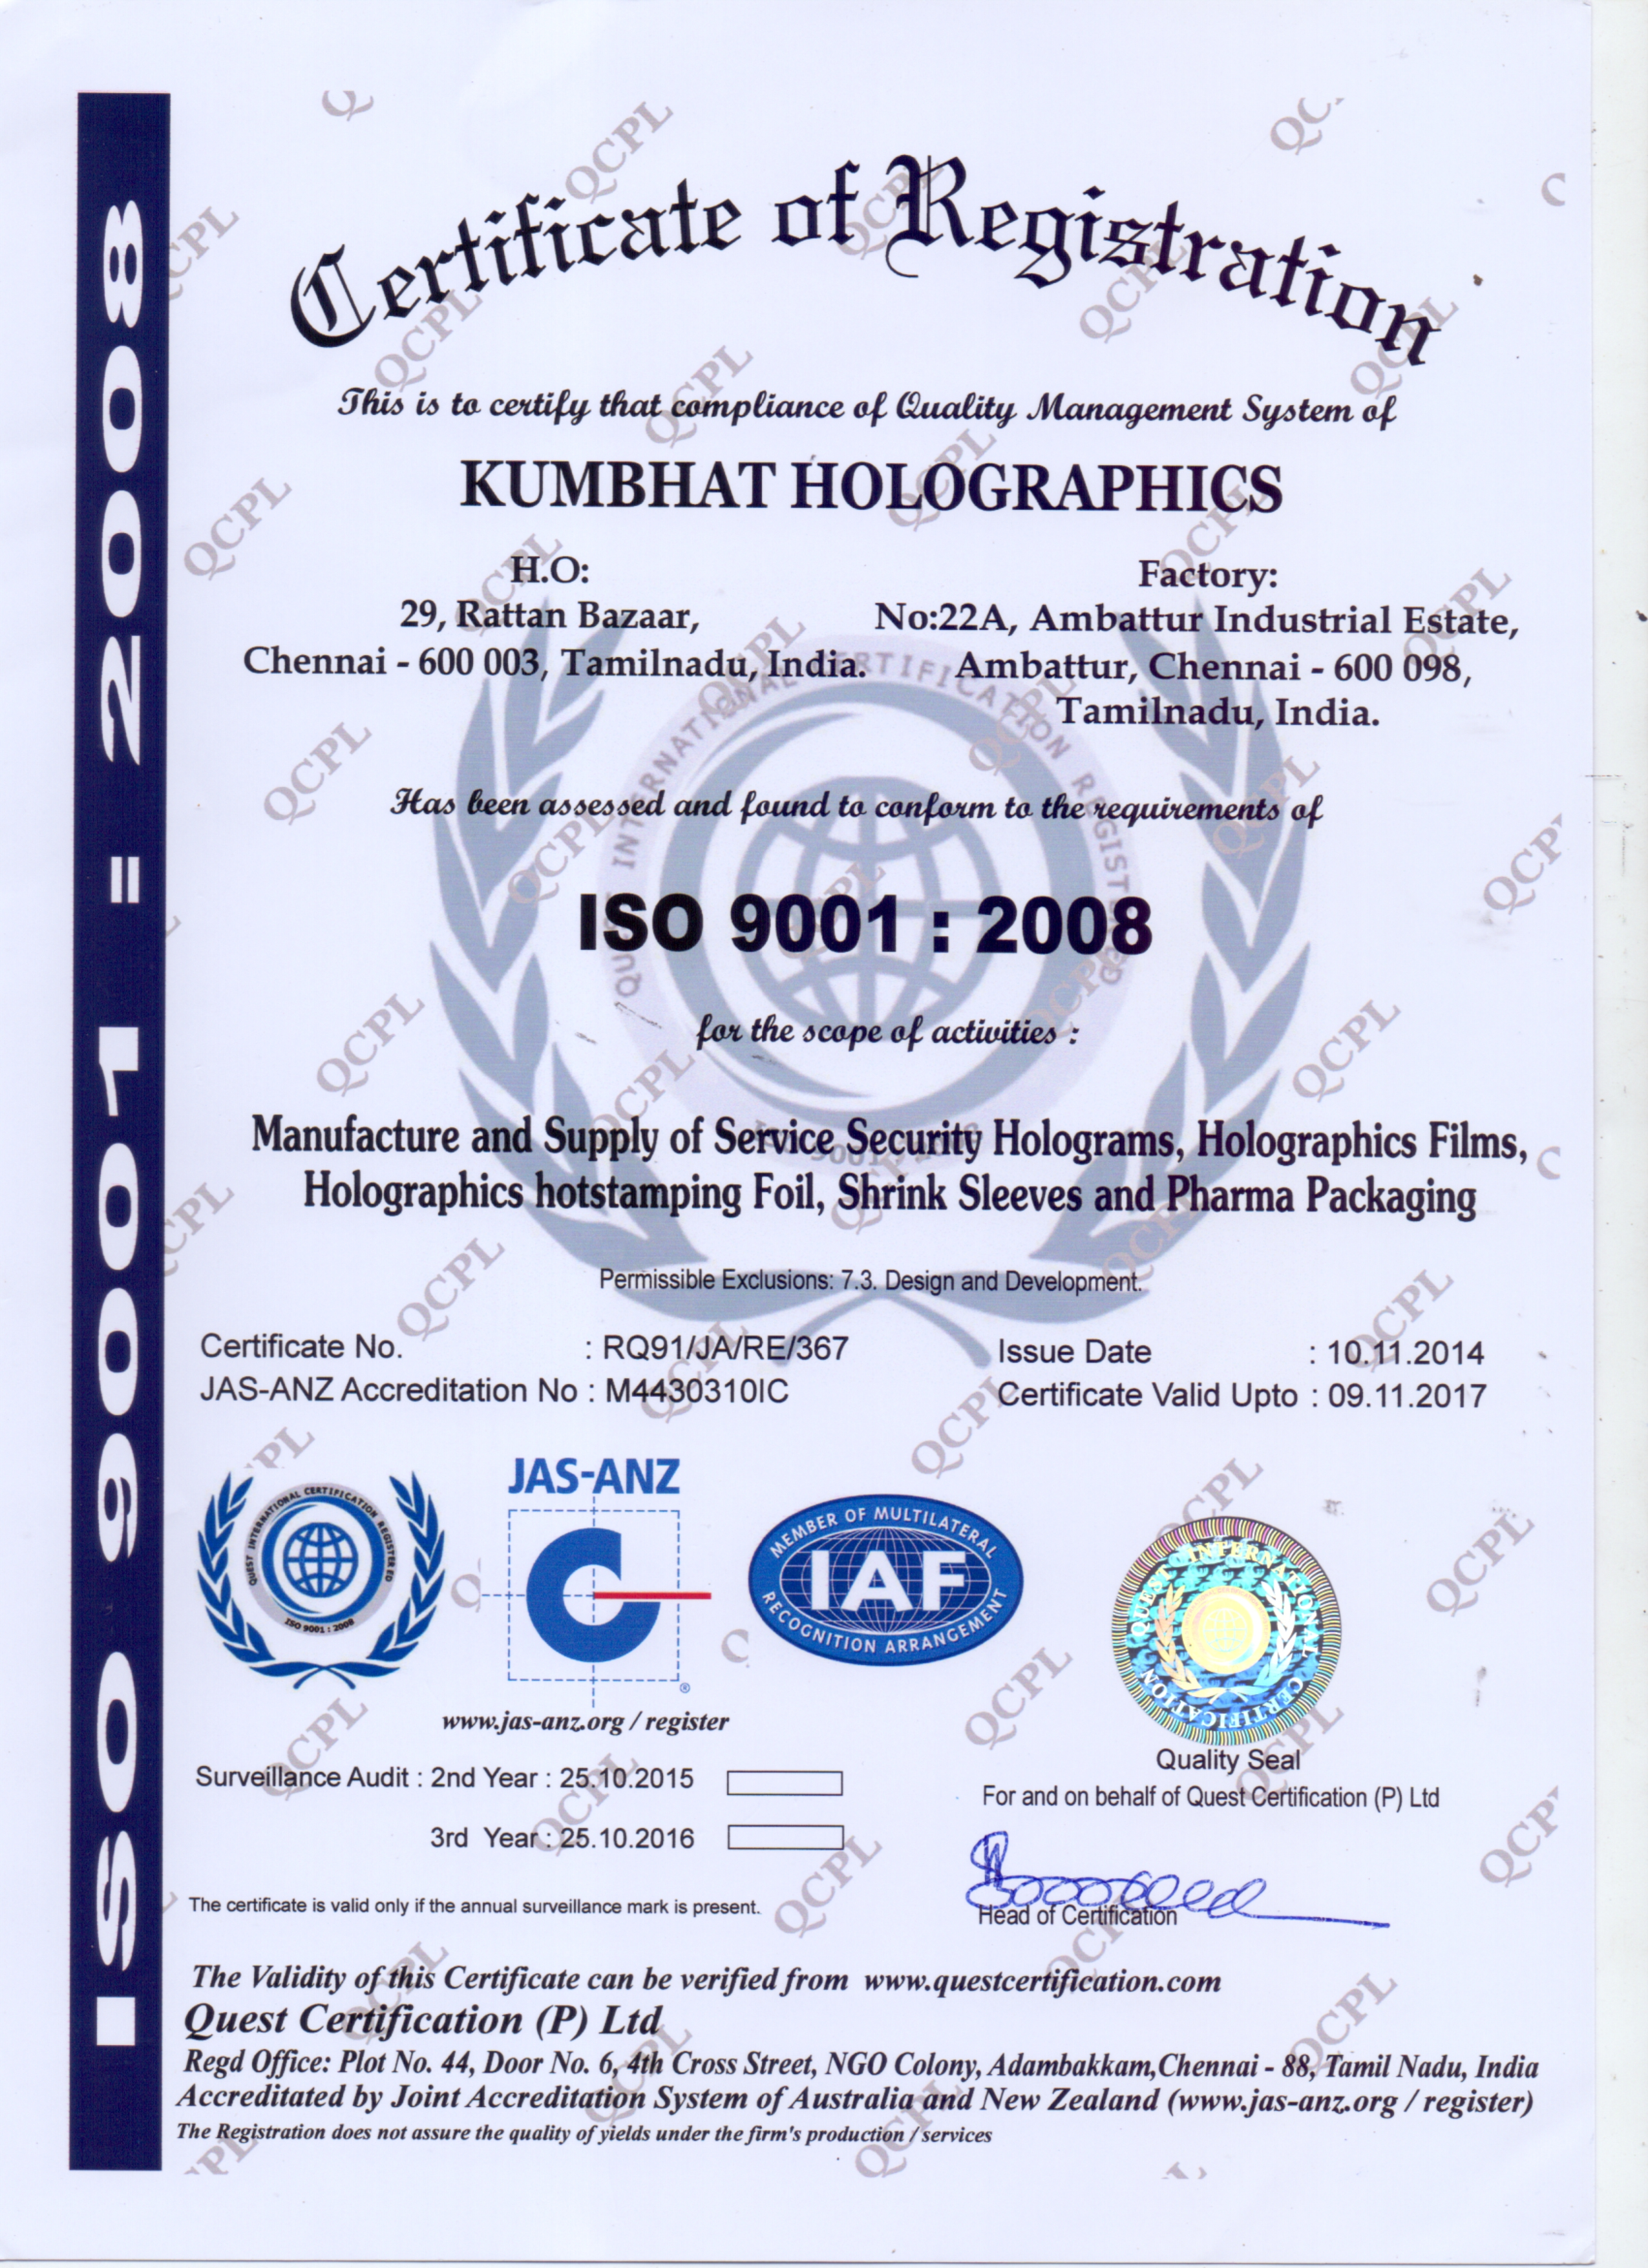 iso-9001-2008-certificate-2017